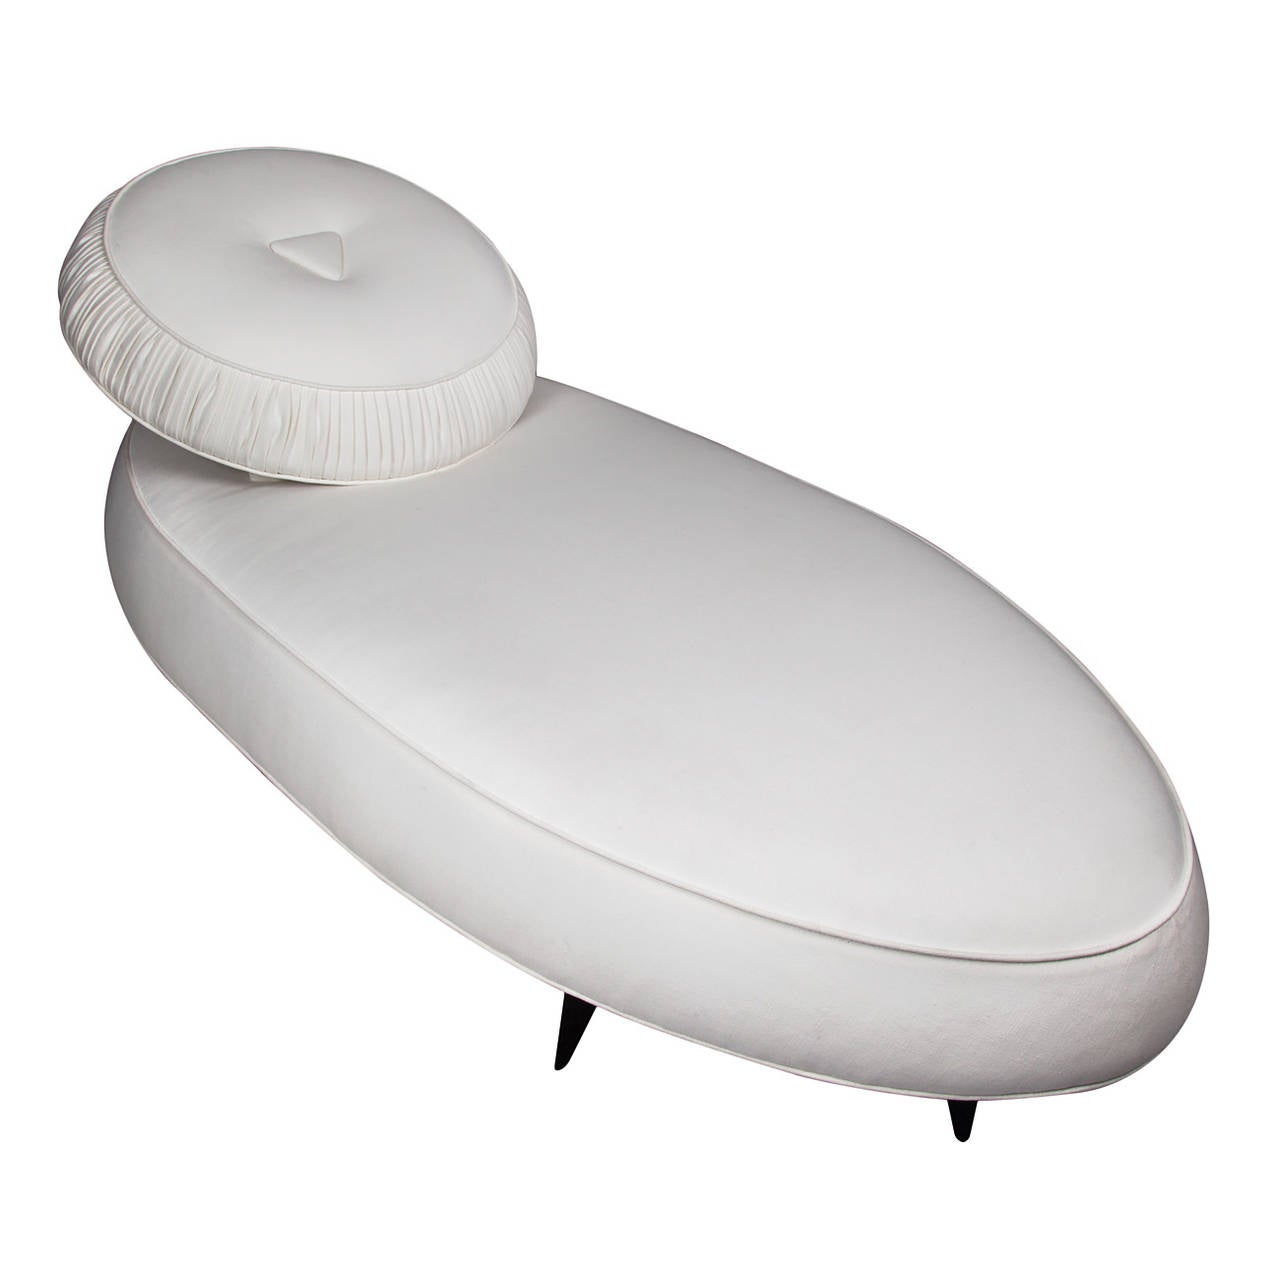 Unusual french art deco chaise longue for sale at 1stdibs for Art deco chaise longue